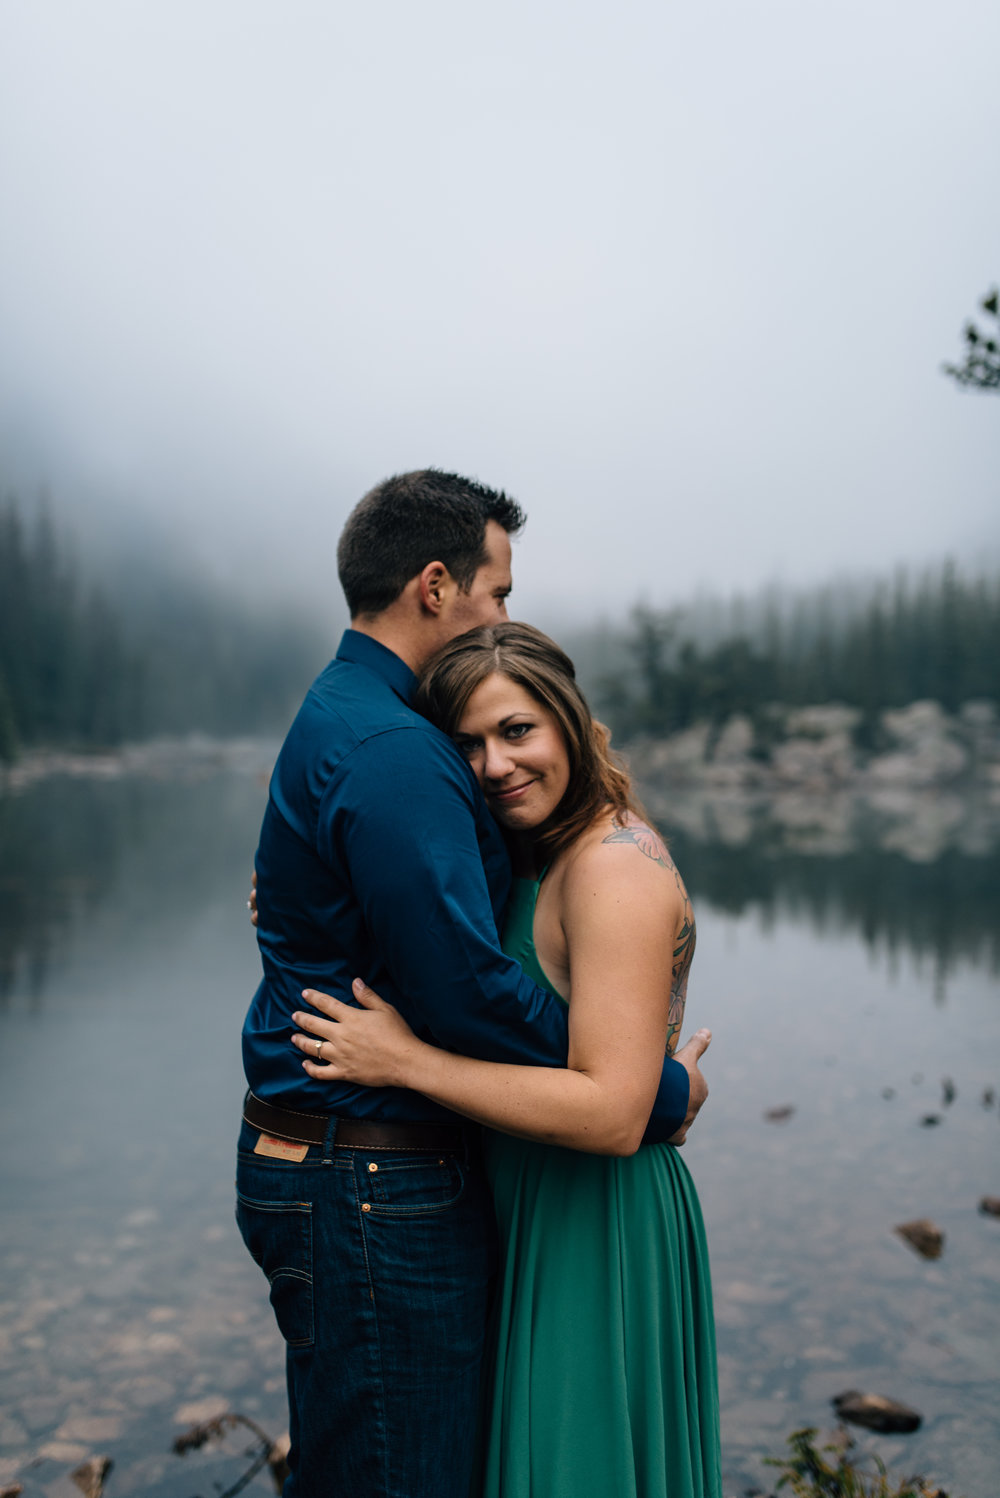 Denver, Colorado wedding photographer.